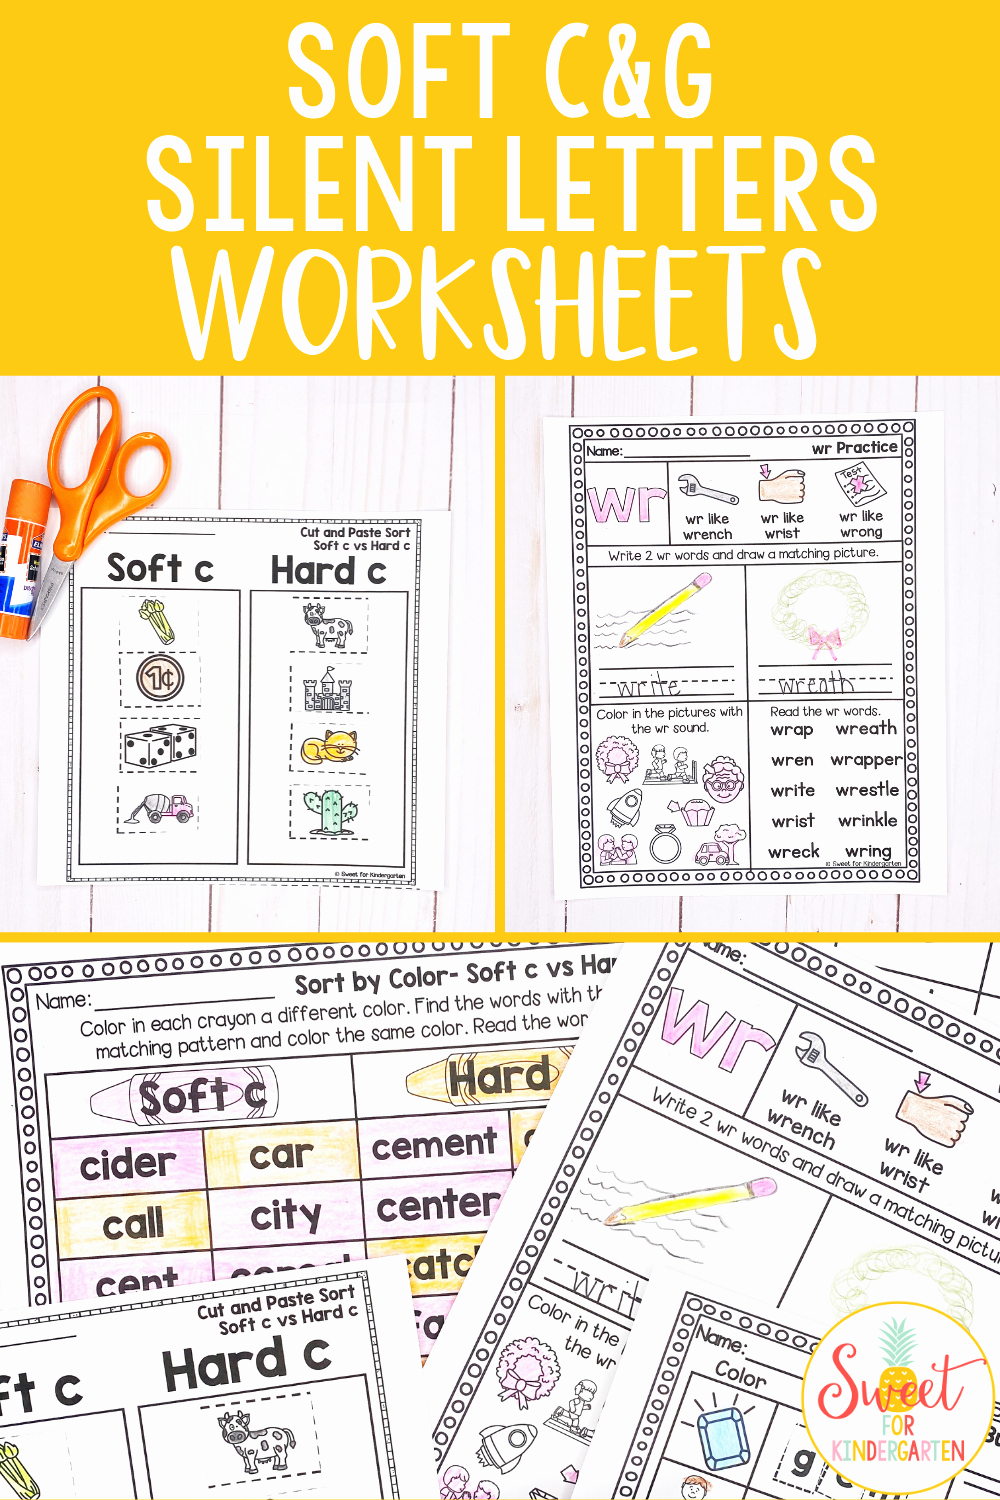 Soft C and G Worksheets Luxury soft C soft G and Silent Letters Worksheets Distance